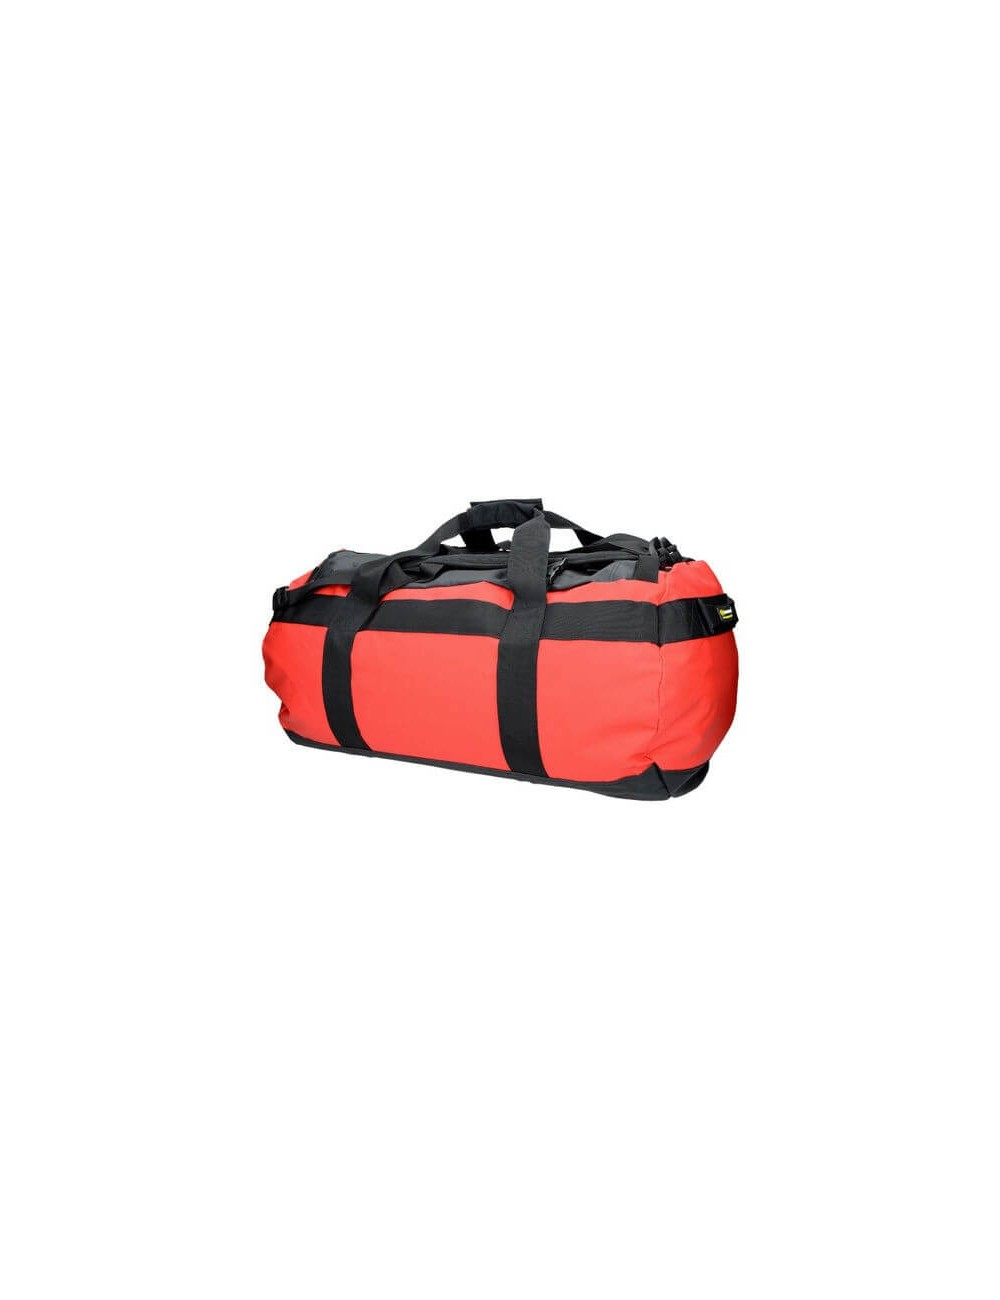 Highlander Lomond Tarpaulins Duffle Bag 65 - Red